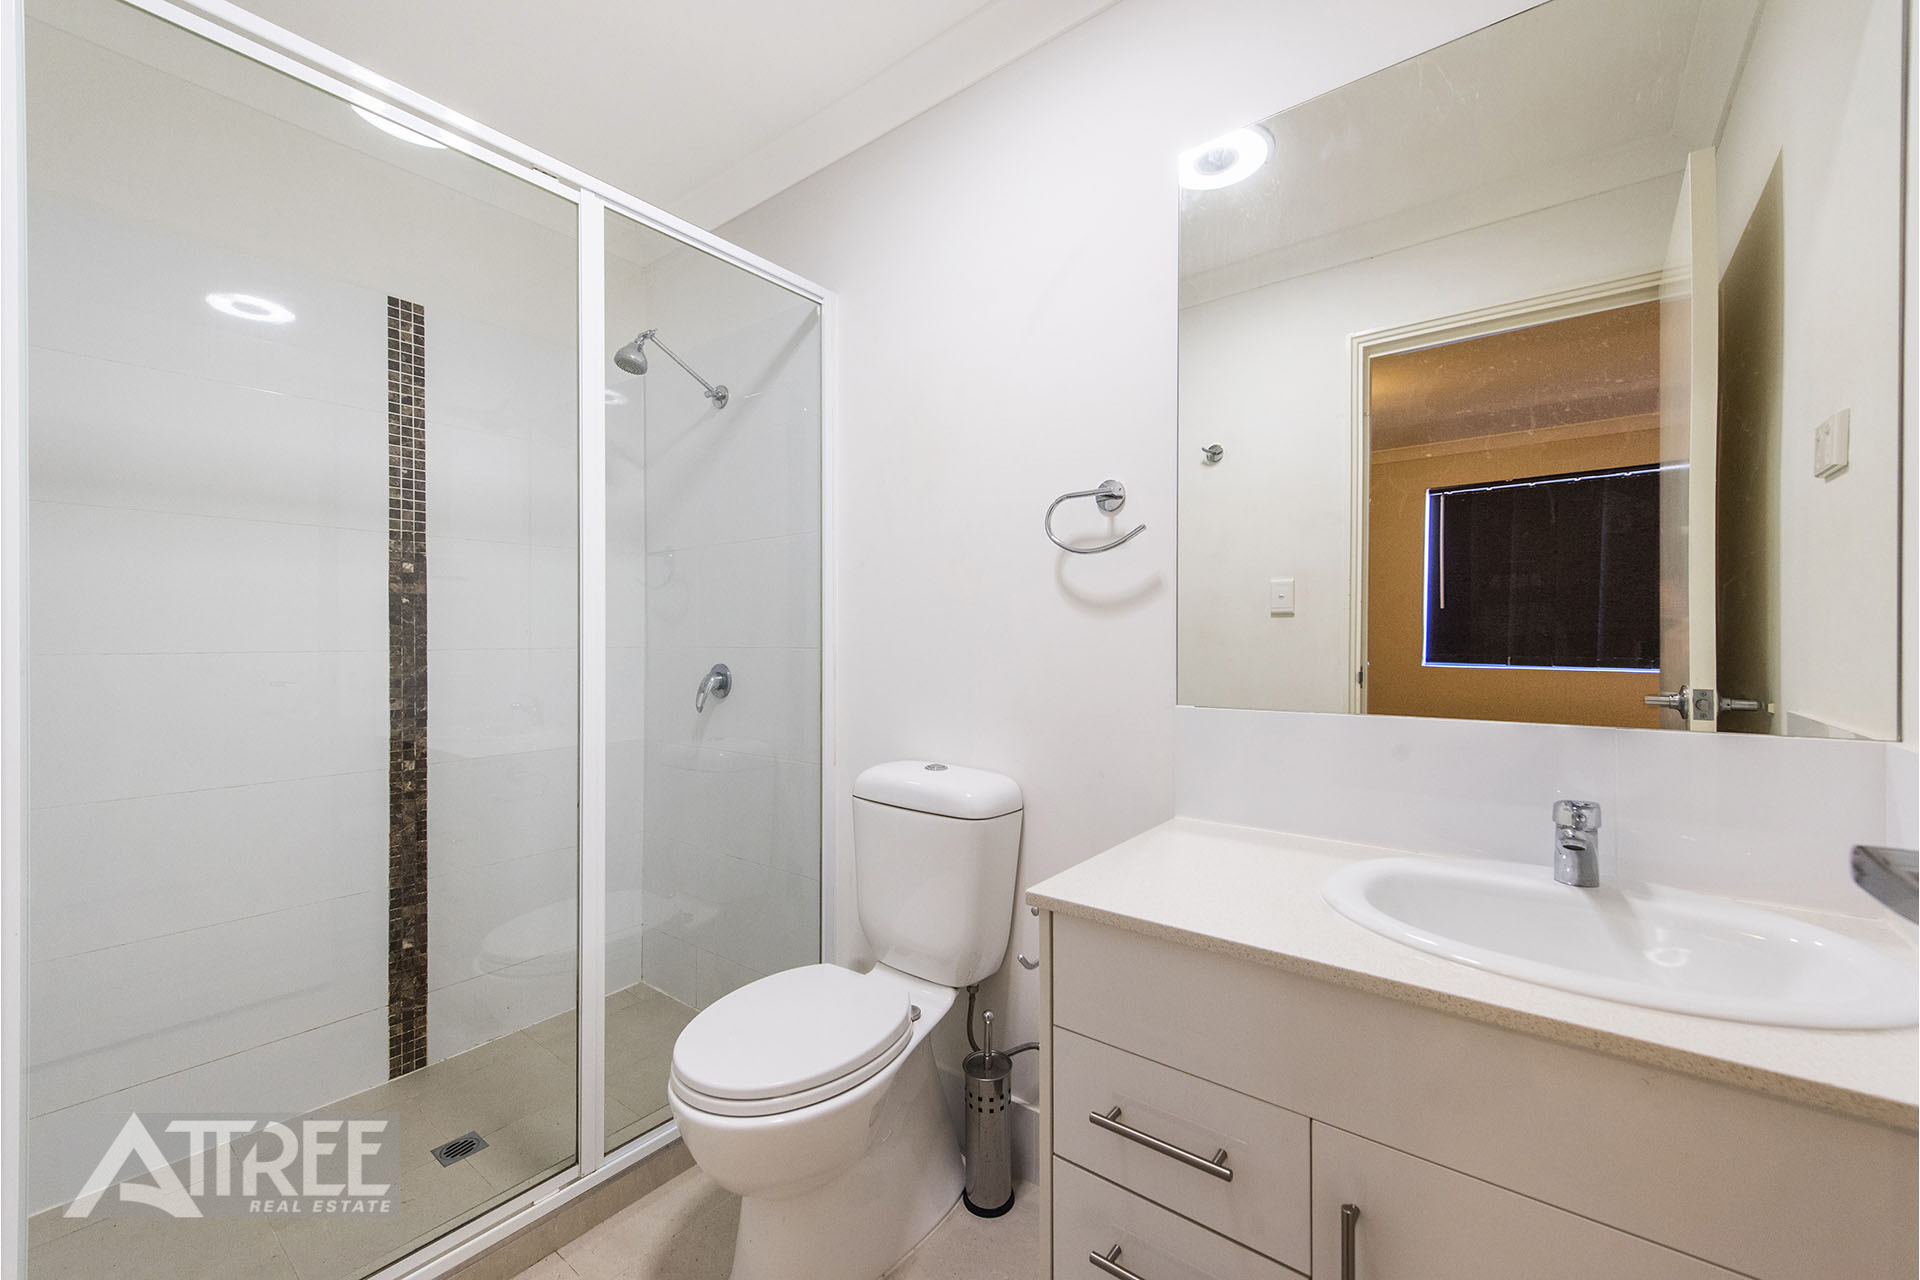 Property for sale in SOUTHERN RIVER, 18 Lakey Street : Attree Real Estate